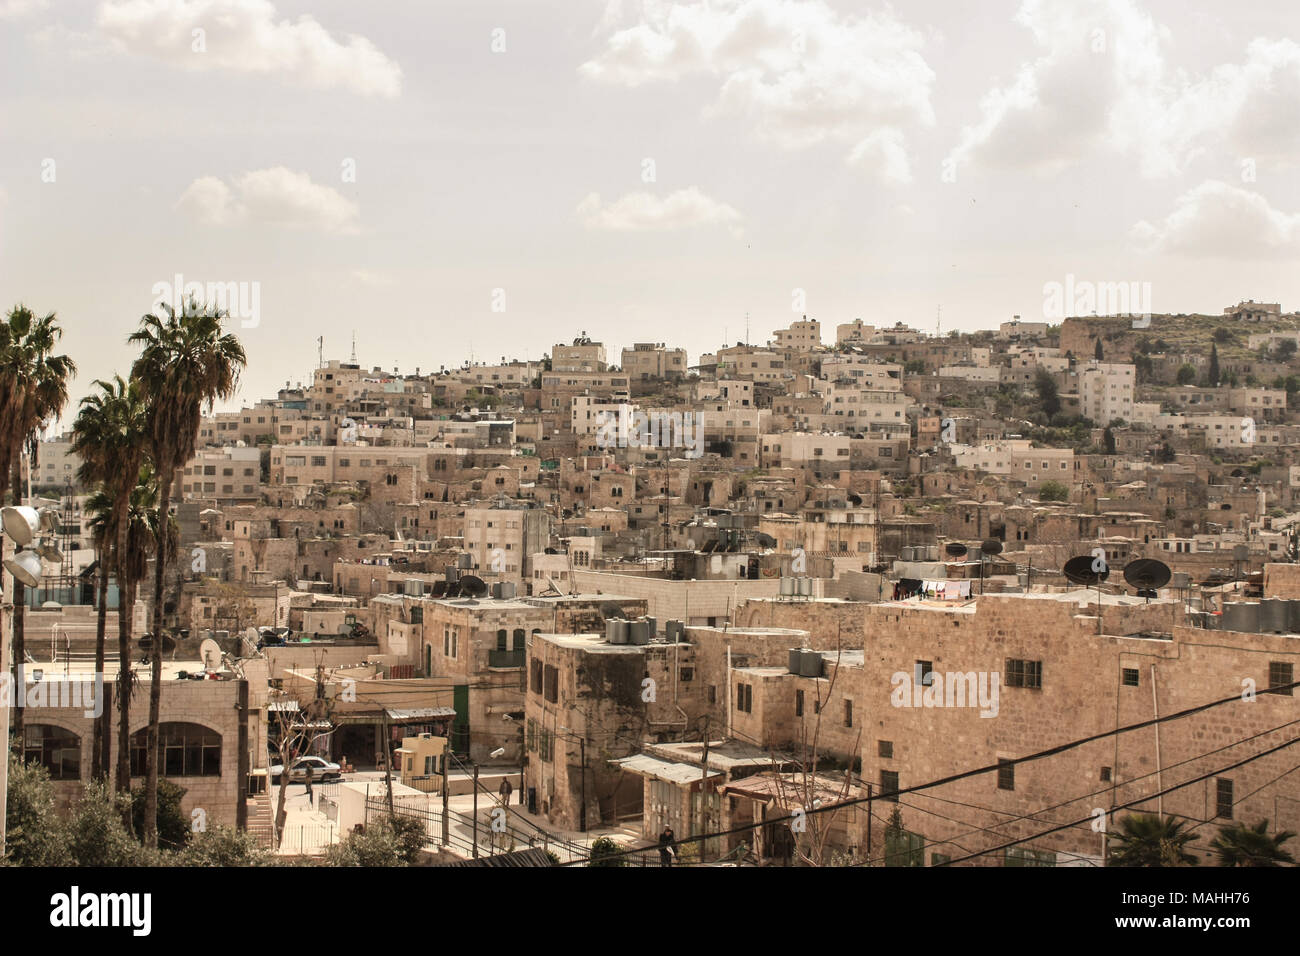 View of the city of bethlehem in the occupied palestinian territorys with palm trees in the foreground - Stock Image